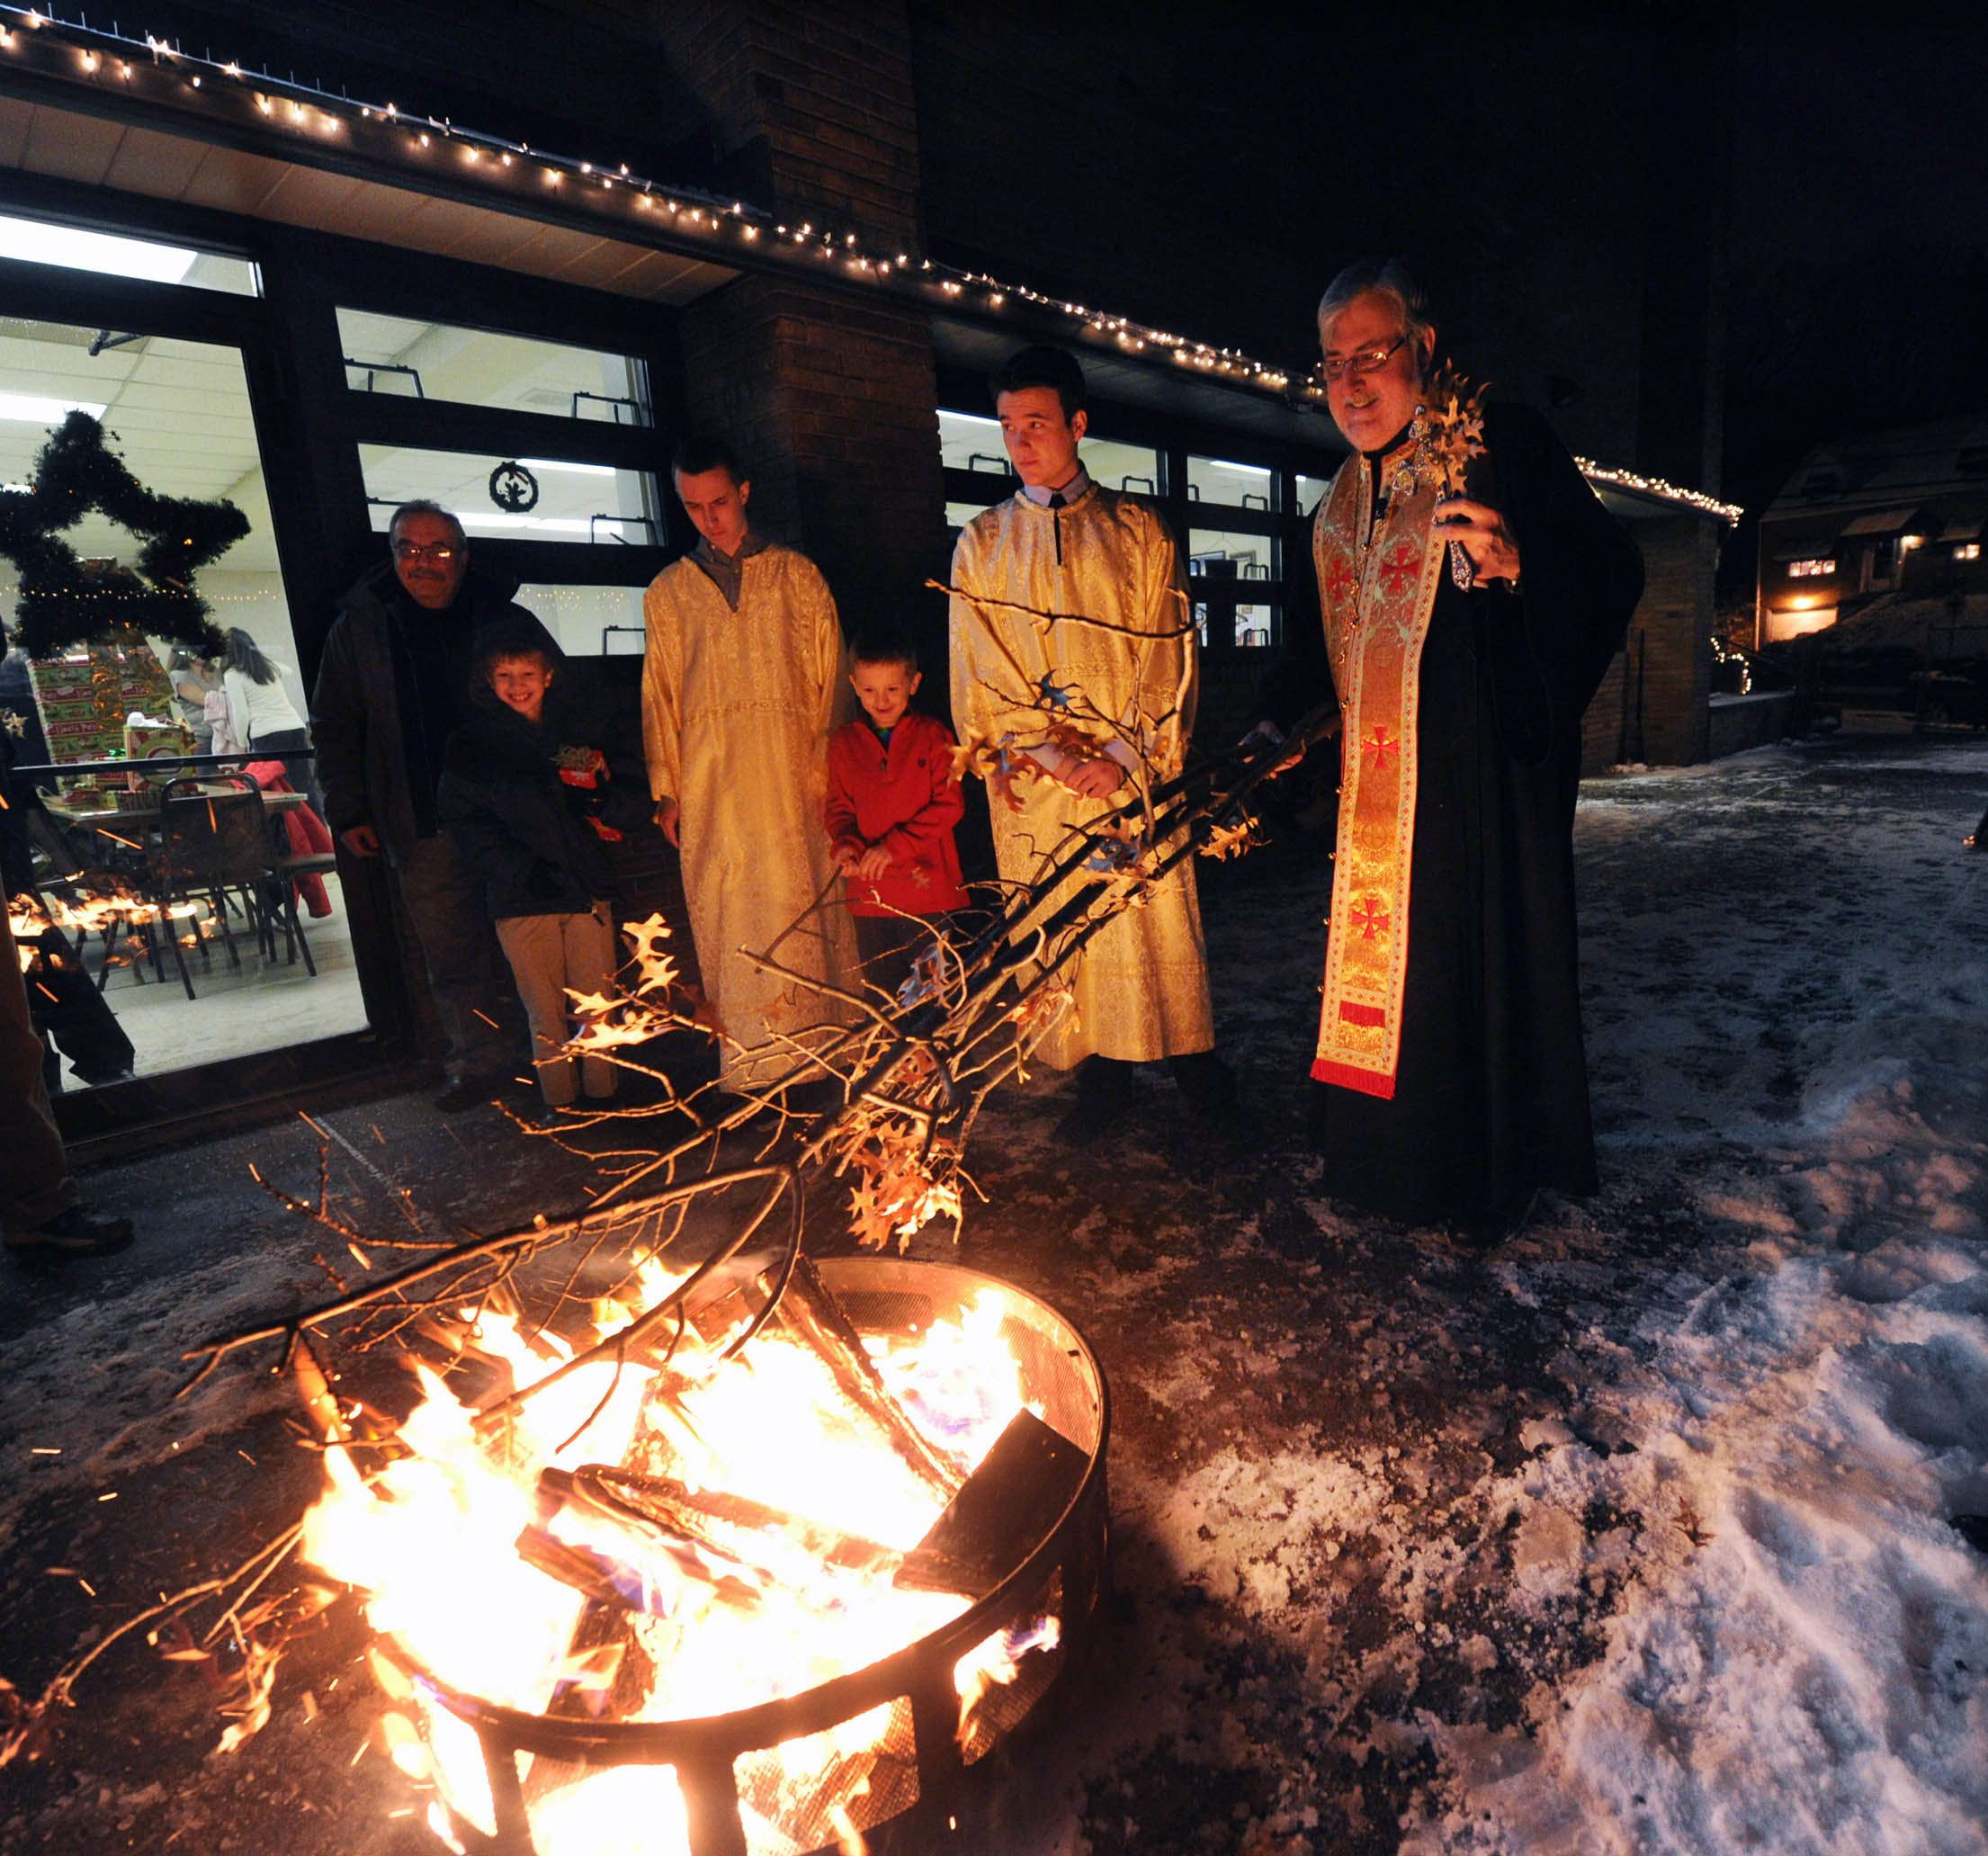 "John Heller / Post - Gazette Local / Yule Log McKeesport - Jan. 06, 2014 - Father Stevan Rocknage , right, Pastor of St. Sava Serbian Orthodox Church in McKeesport, oversees the burning of the ""Badnjak"" or Yule log .The ceremony is usually held out doors but due to extreme cold weather, the Orthodox Christmas Eve service was held in the parish hall under the church. Only the burning of the log was outdoors."